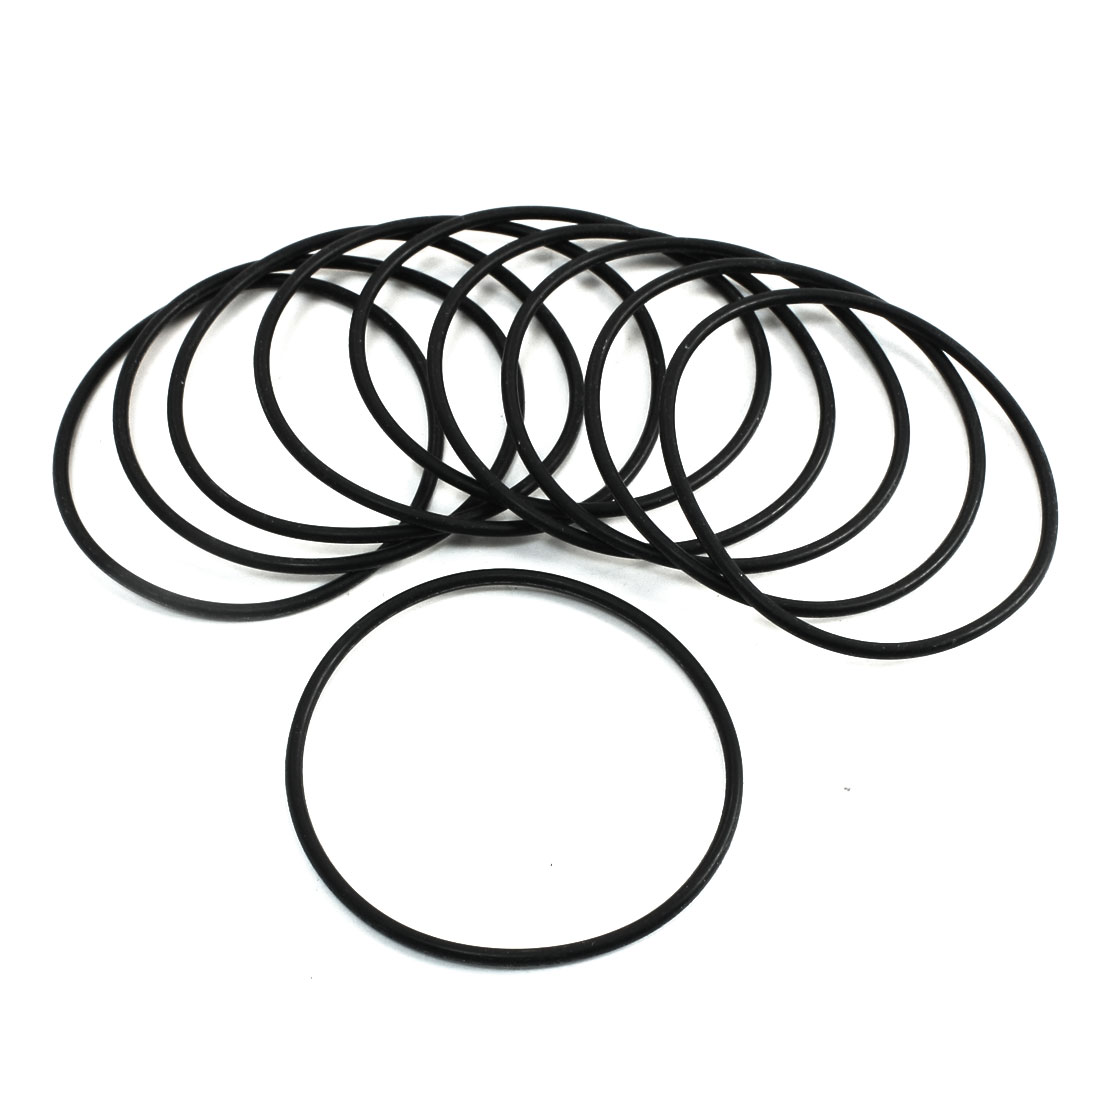 10Pcs 62mm x 2.4mm Black Rubber Oil Seal O Rings Gaskets Grommets